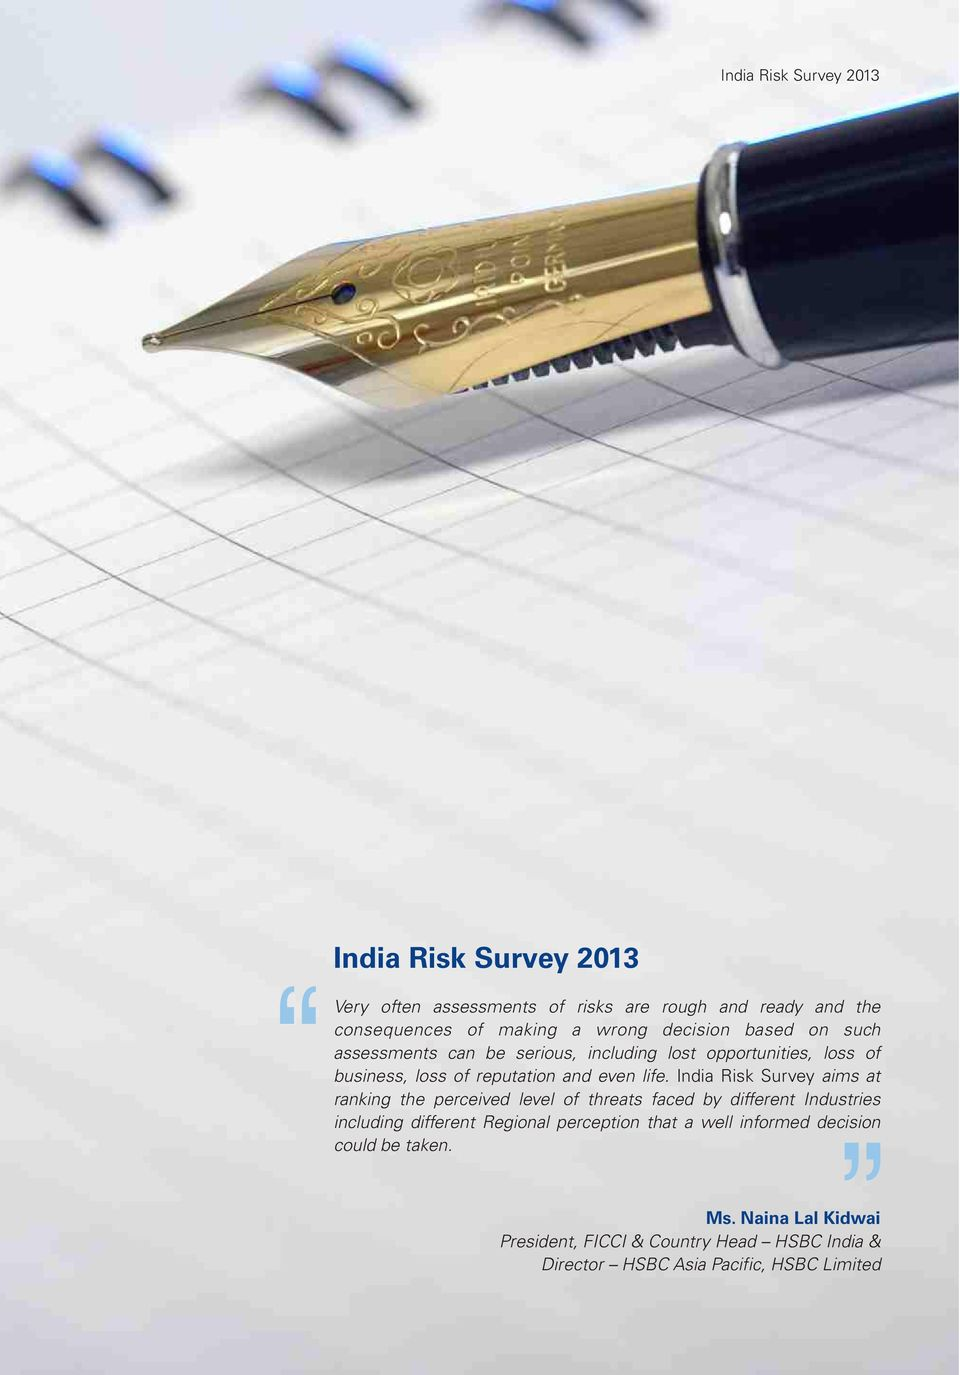 India Risk Survey aims at ranking the perceived level of threats faced by different Industries including different Regional